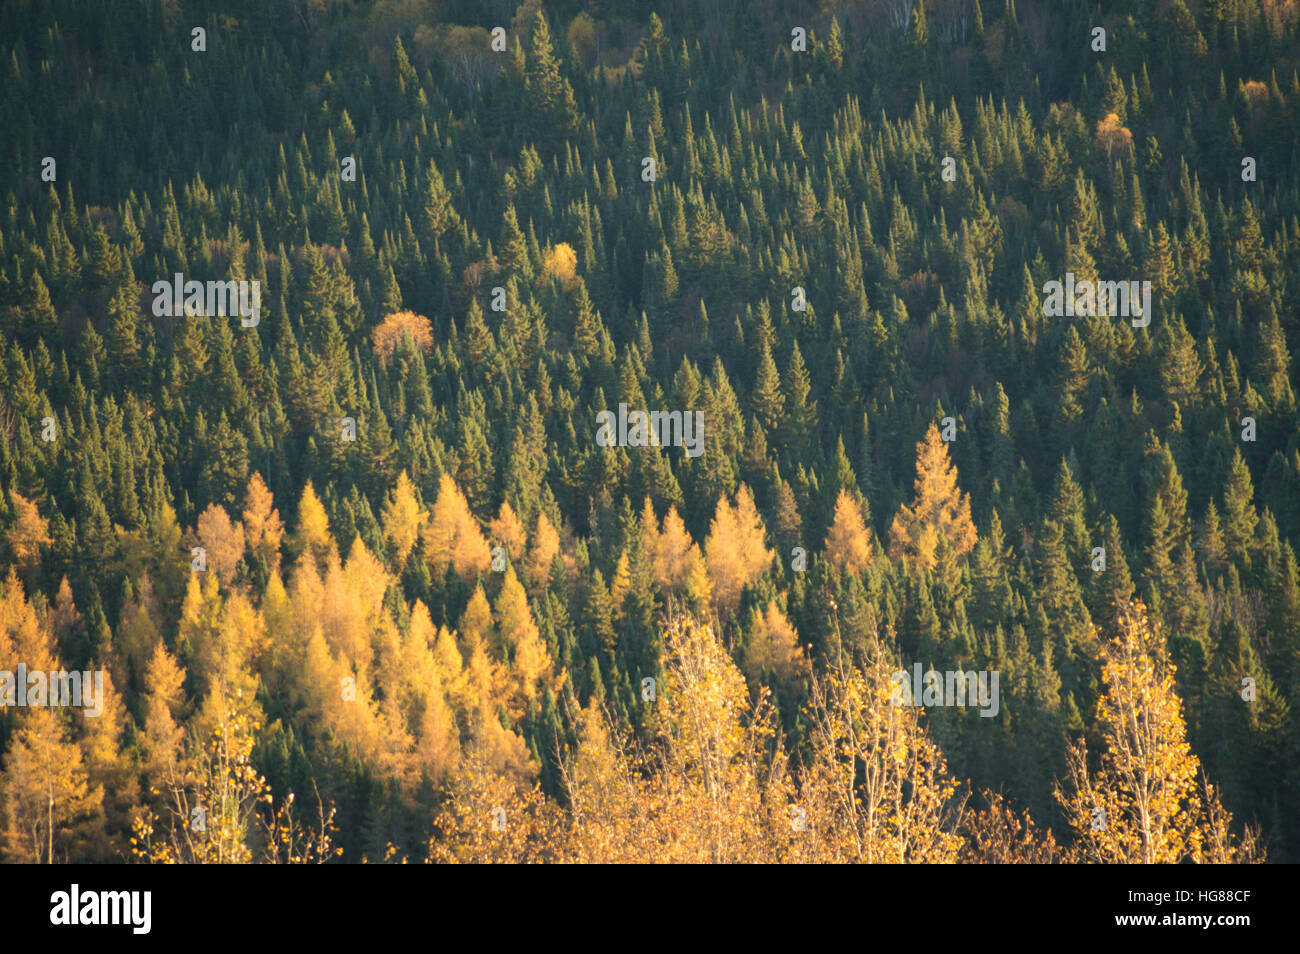 Background image of a valley of mostly green conifers, some yellow deciduous ones like tamarack, side lit by the - Stock Image